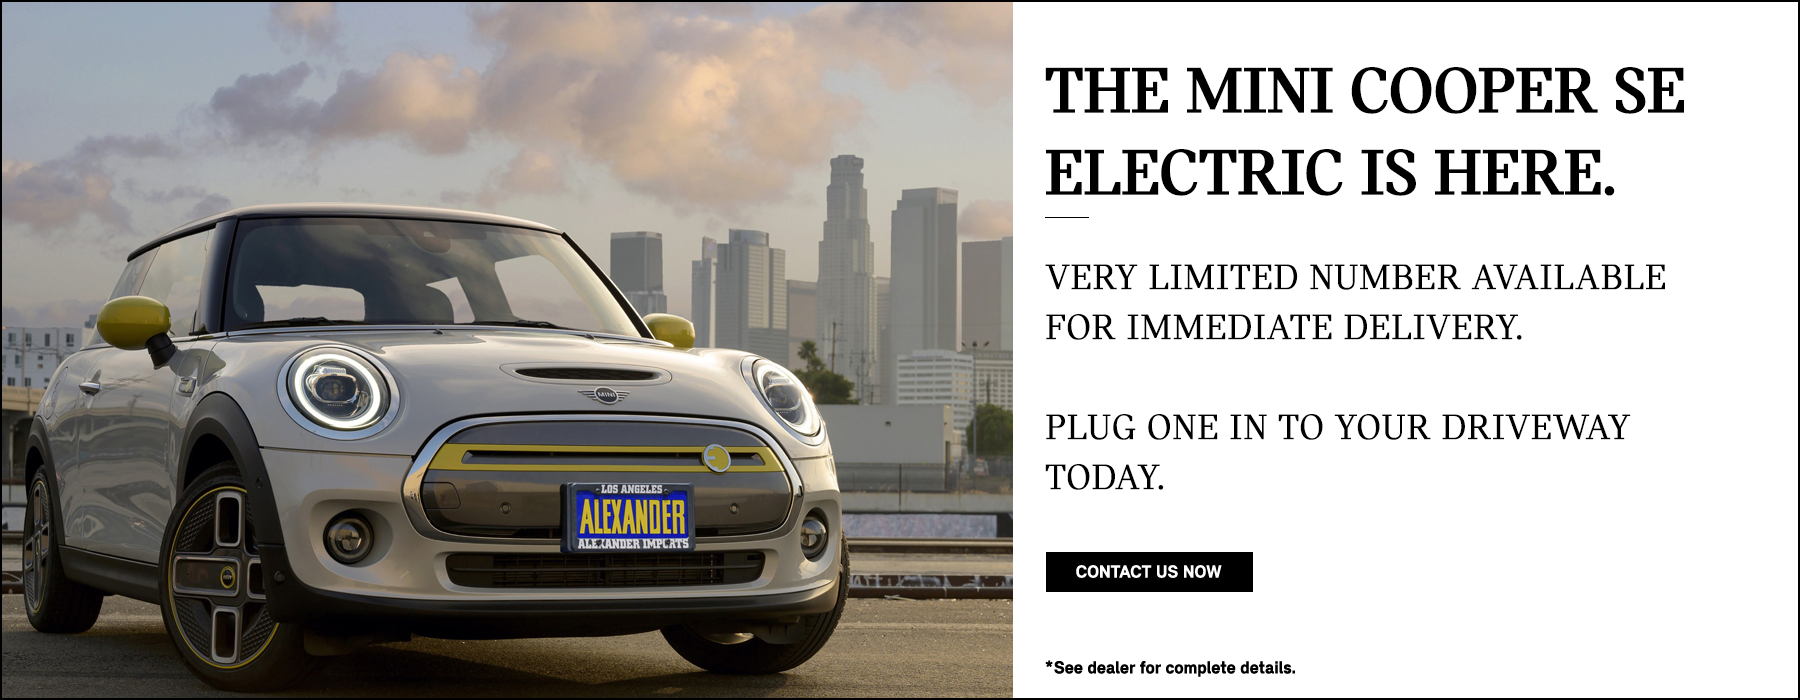 MINI Electric in stock now at Nick Alexander MINI